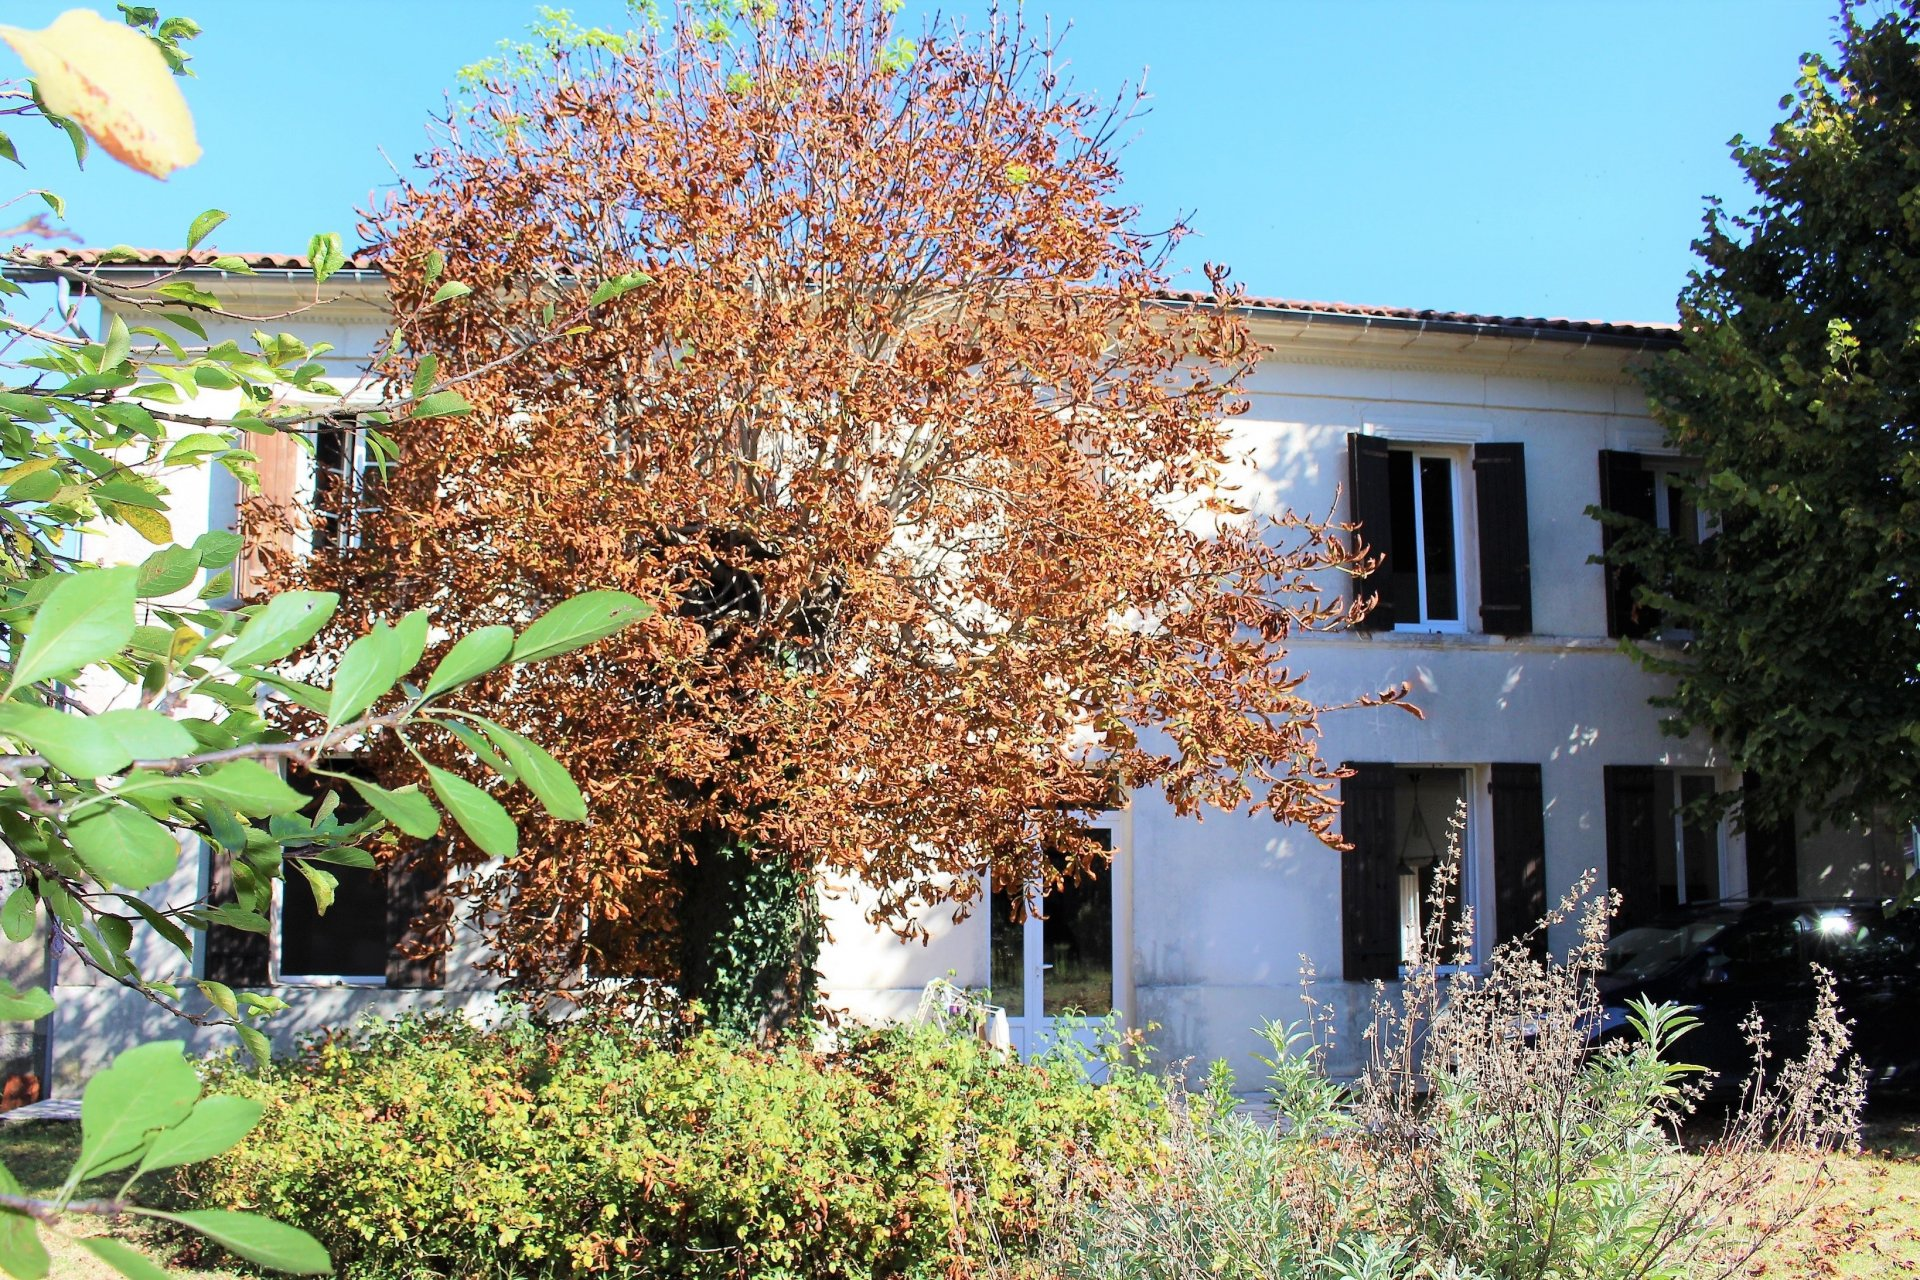 Traditional 3 bedroom Girondine house in a village location